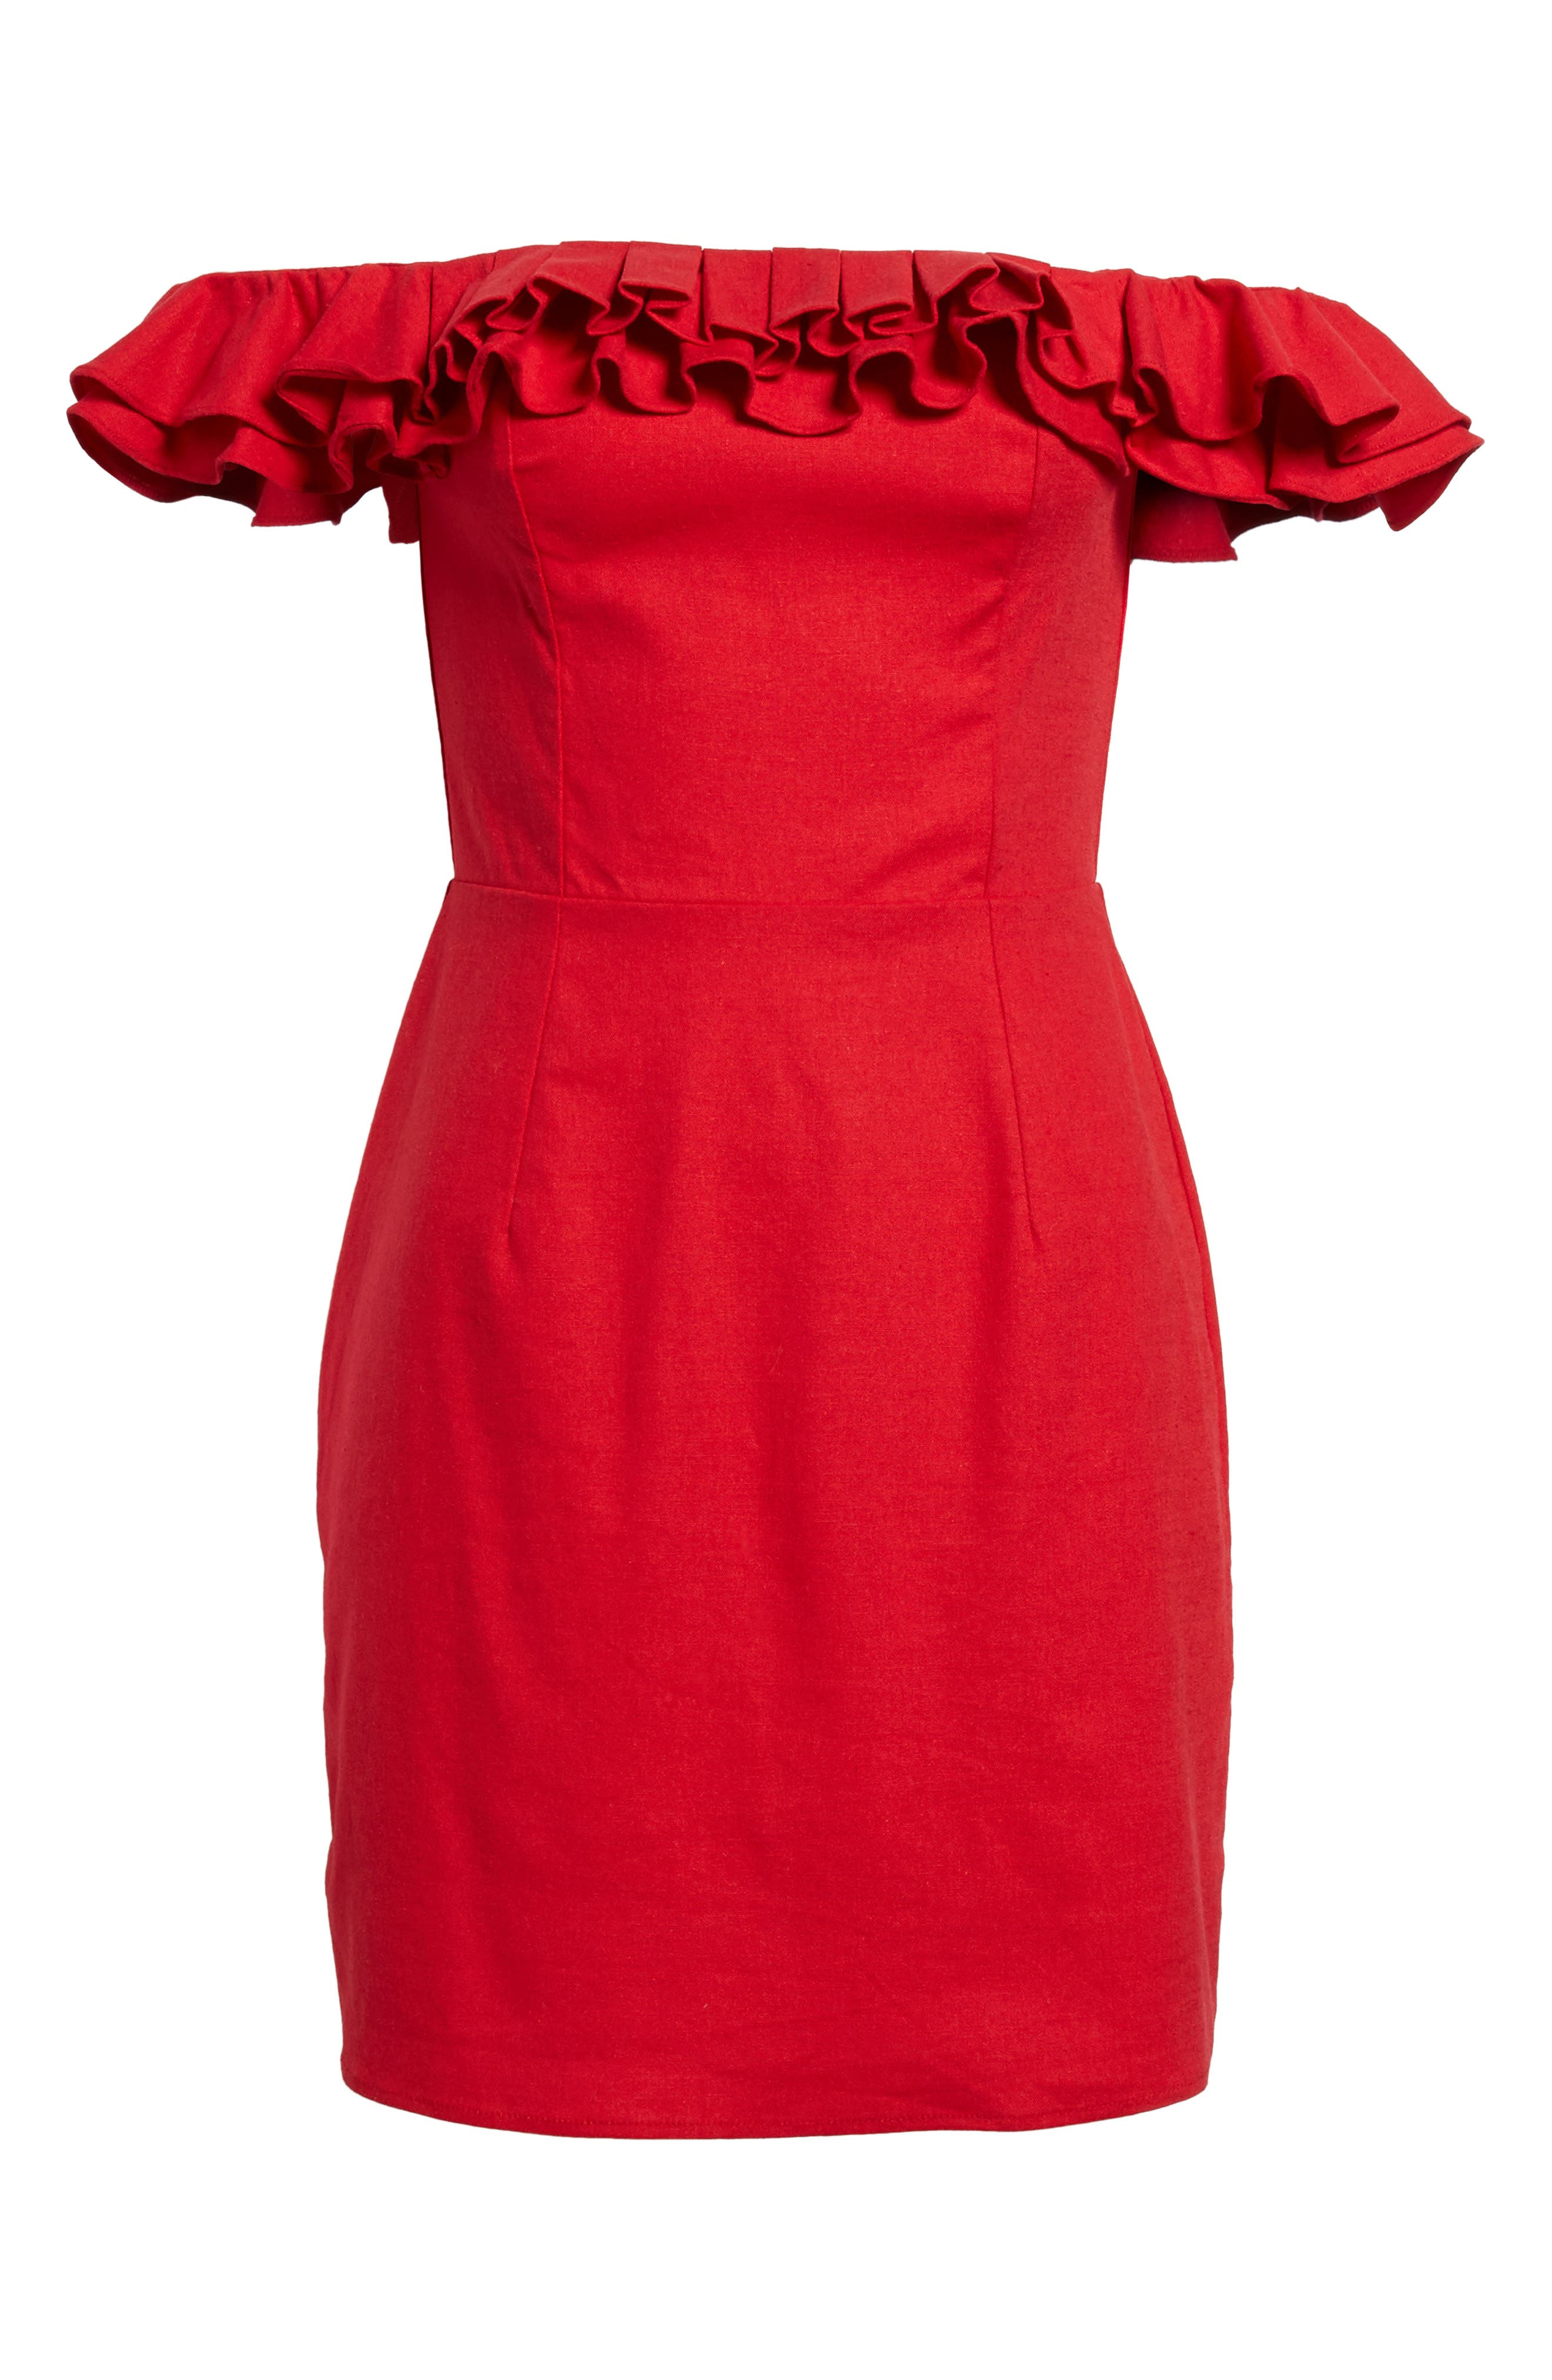 Ruffle Off the Shoulder Minidress,                             Alternate thumbnail 6, color,                             Red